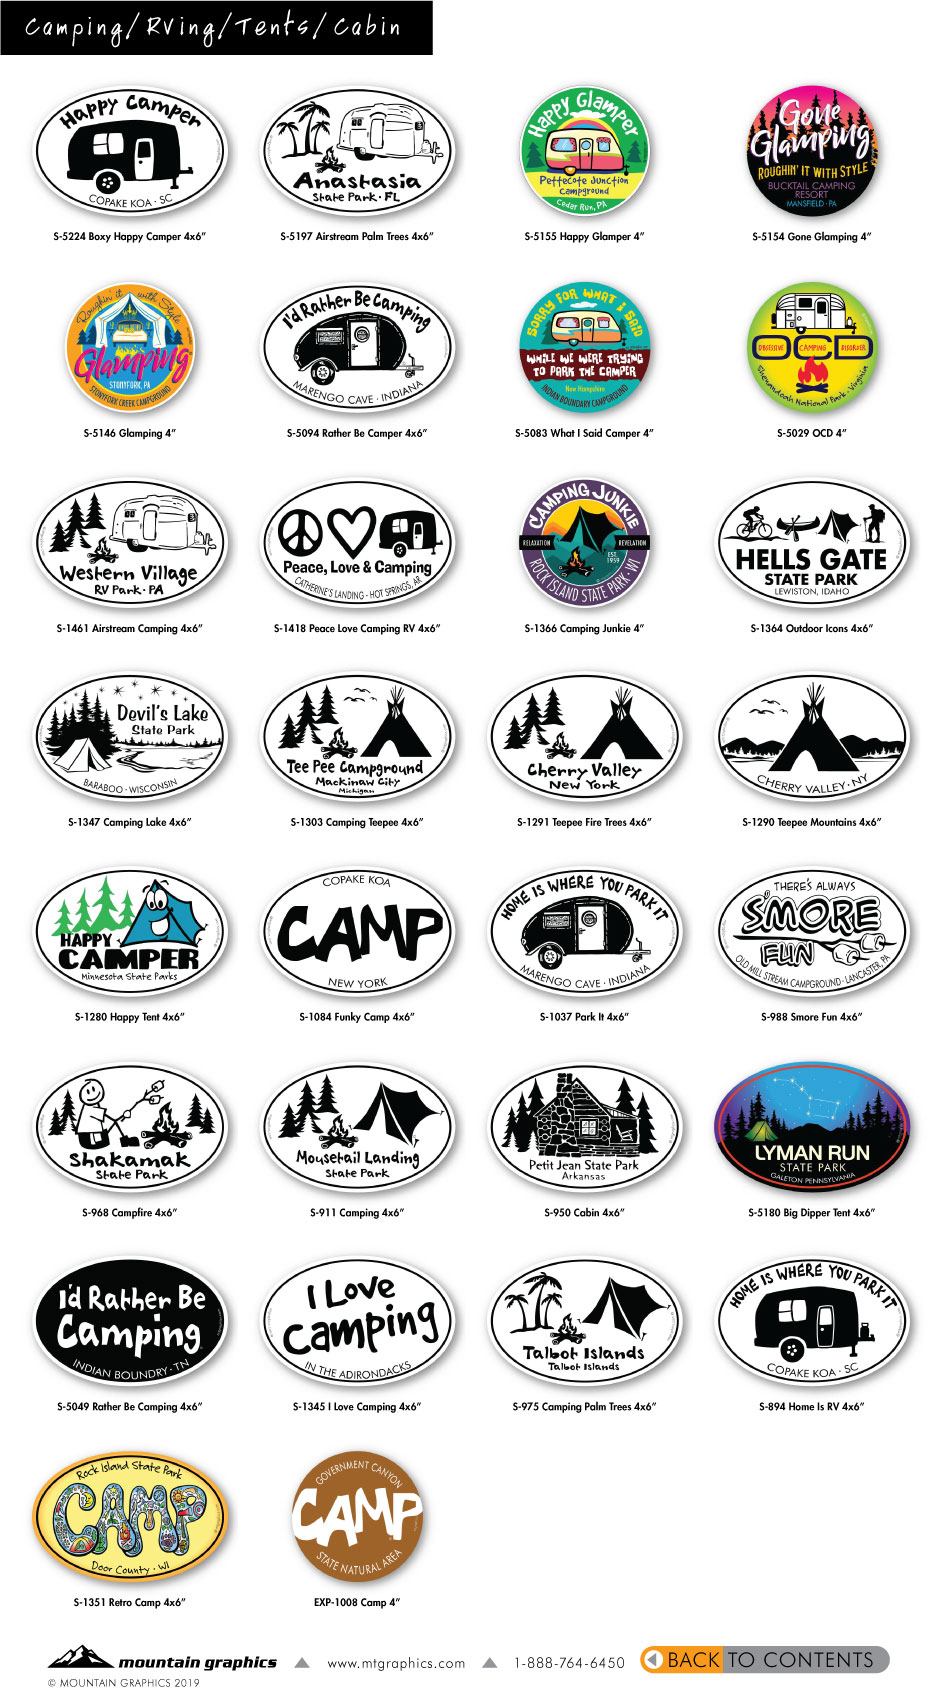 2019-digital-catalog-stickers10.jpg